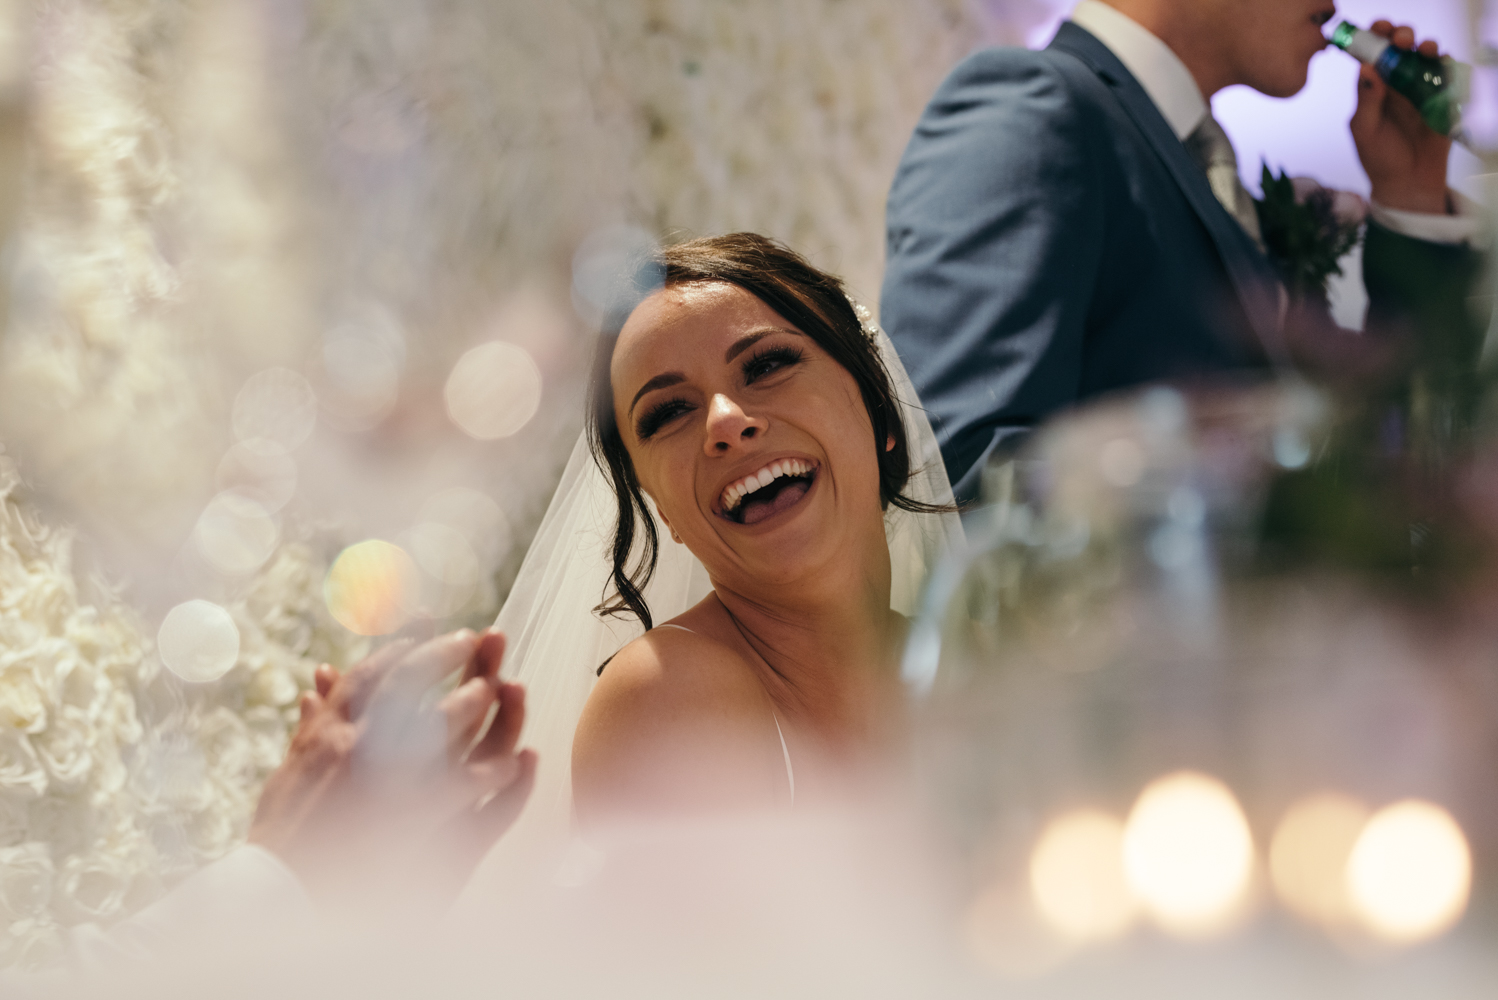 The bride laughing during the speeches